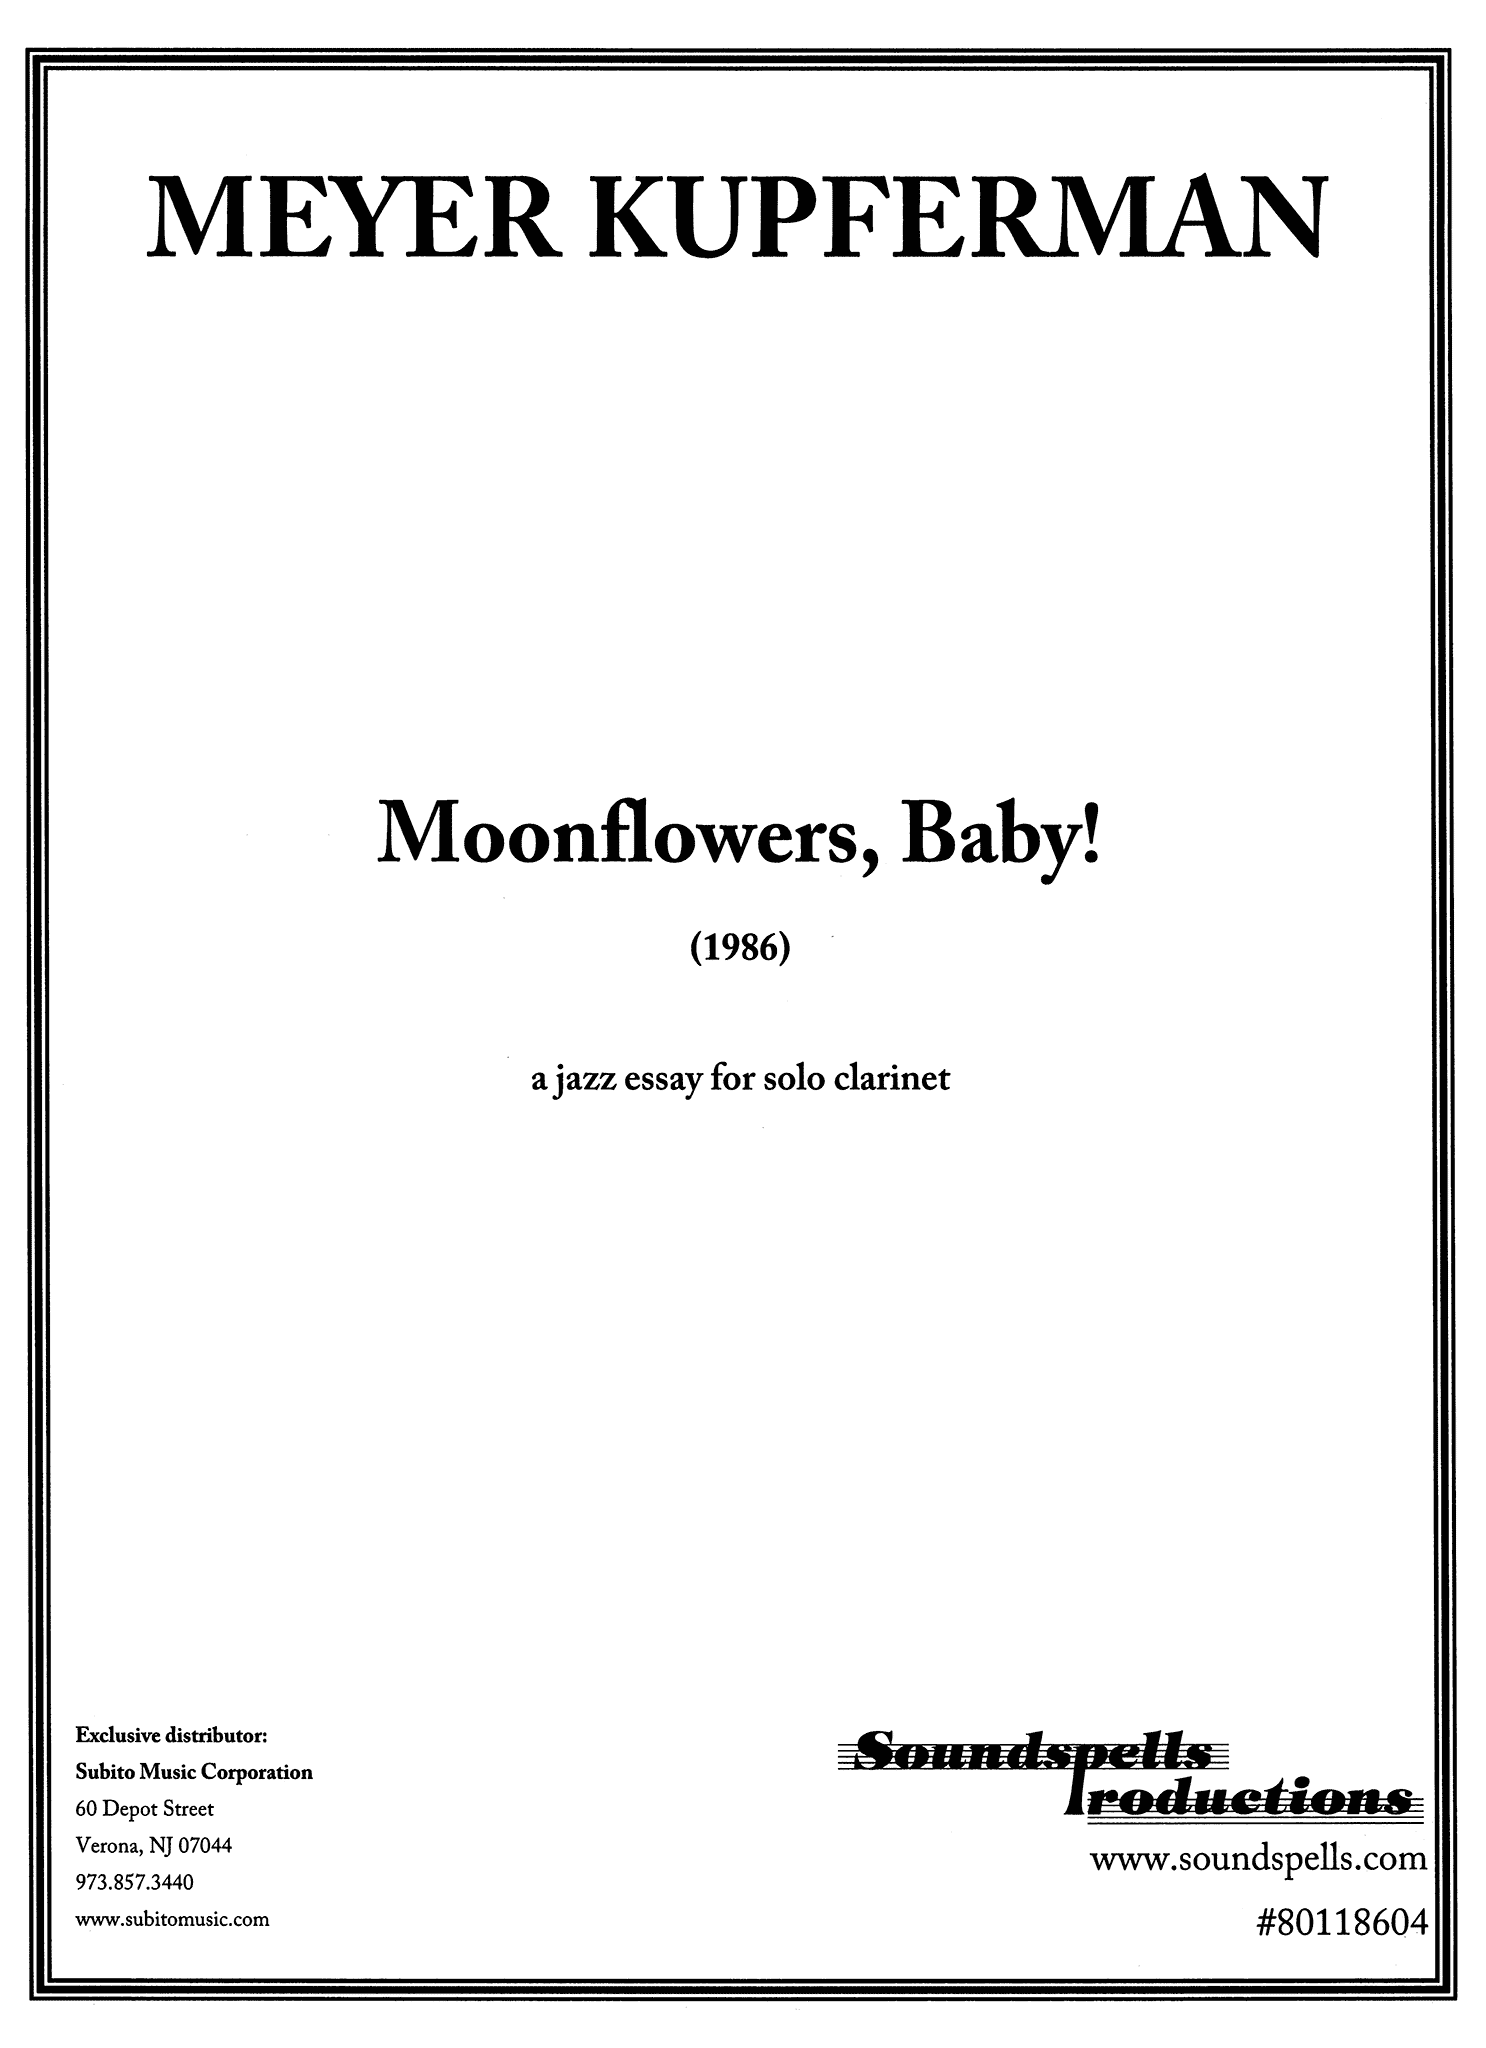 Kupferman Moonflowers, Baby! Cover